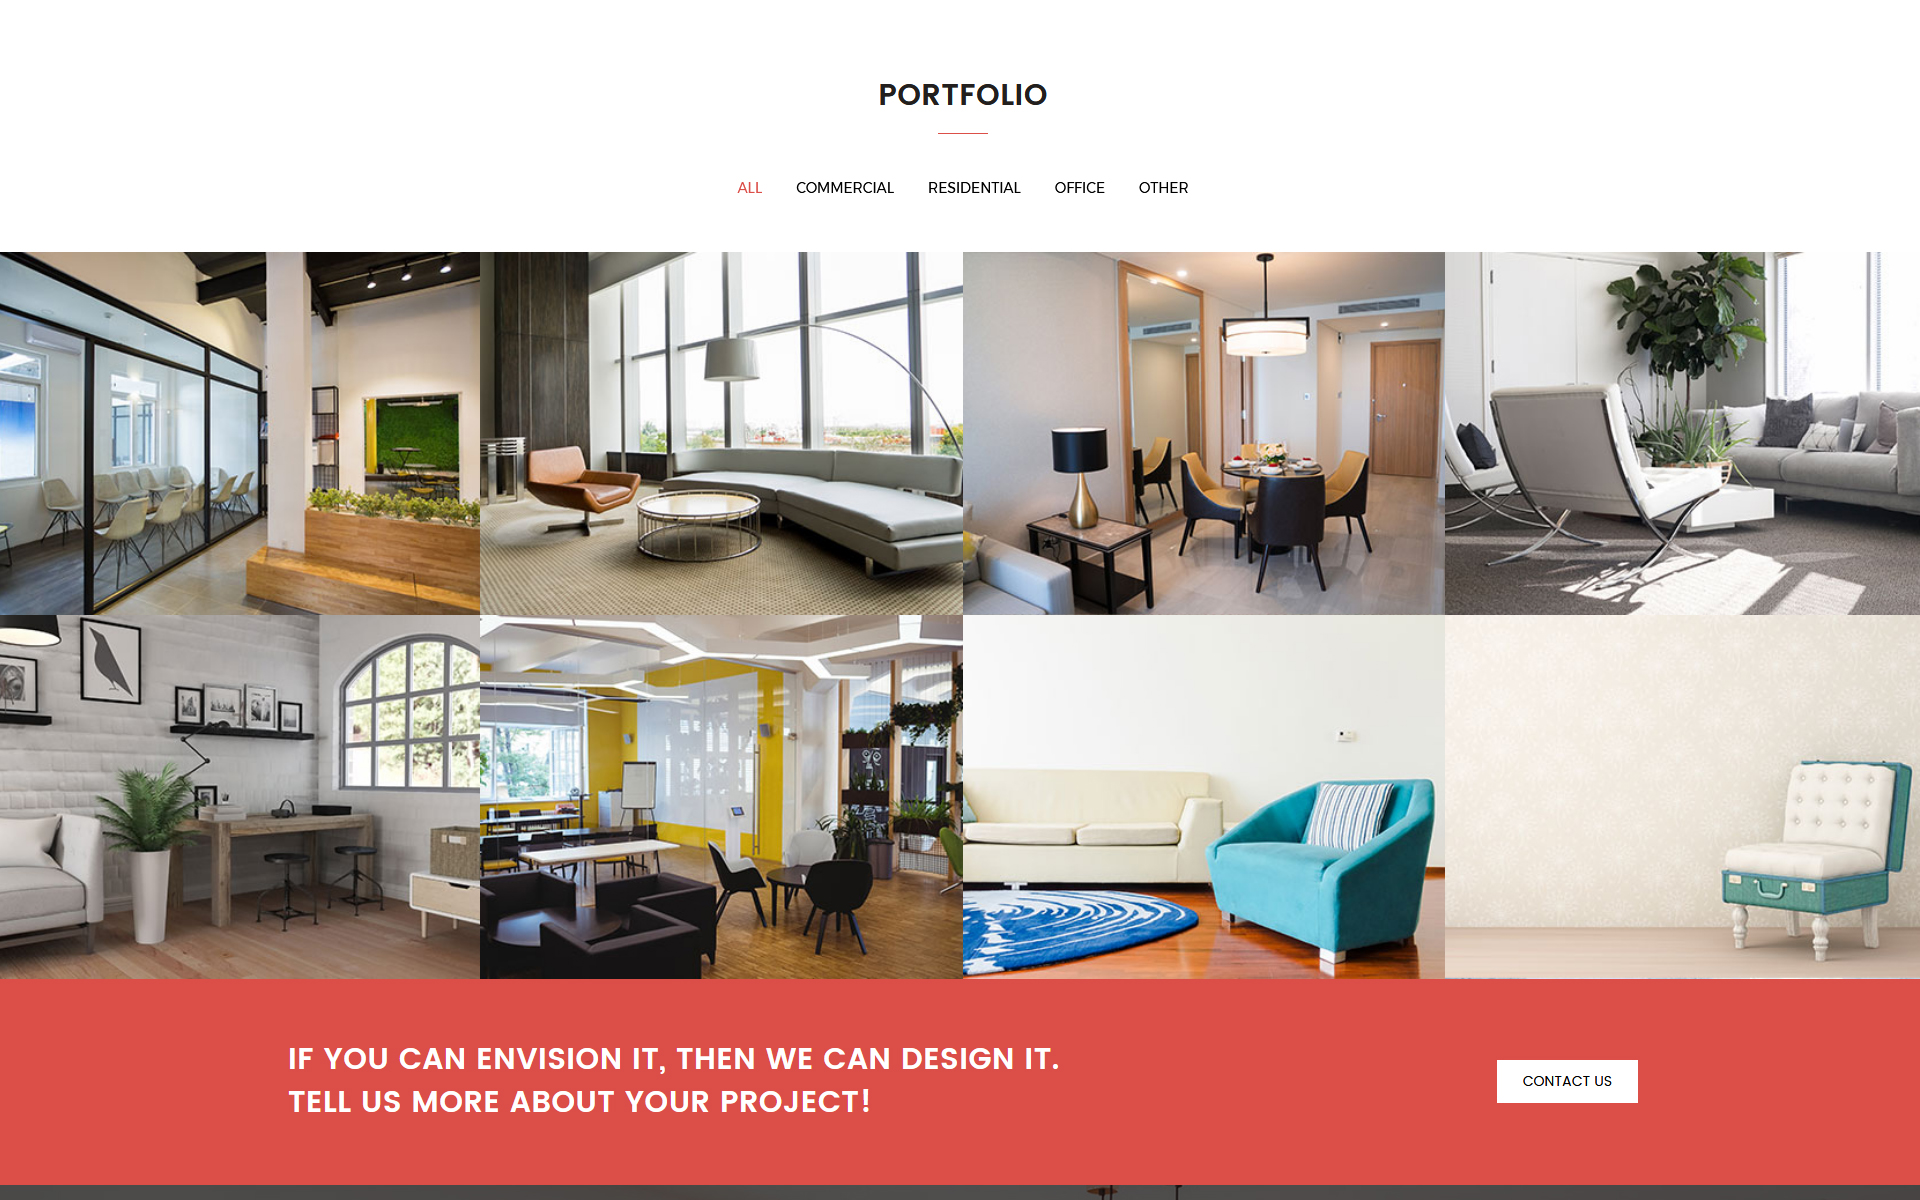 Incroyable Interiart   Interior Design HTML Landing Page Template Big Screenshot ·  Zoom In Live Demo